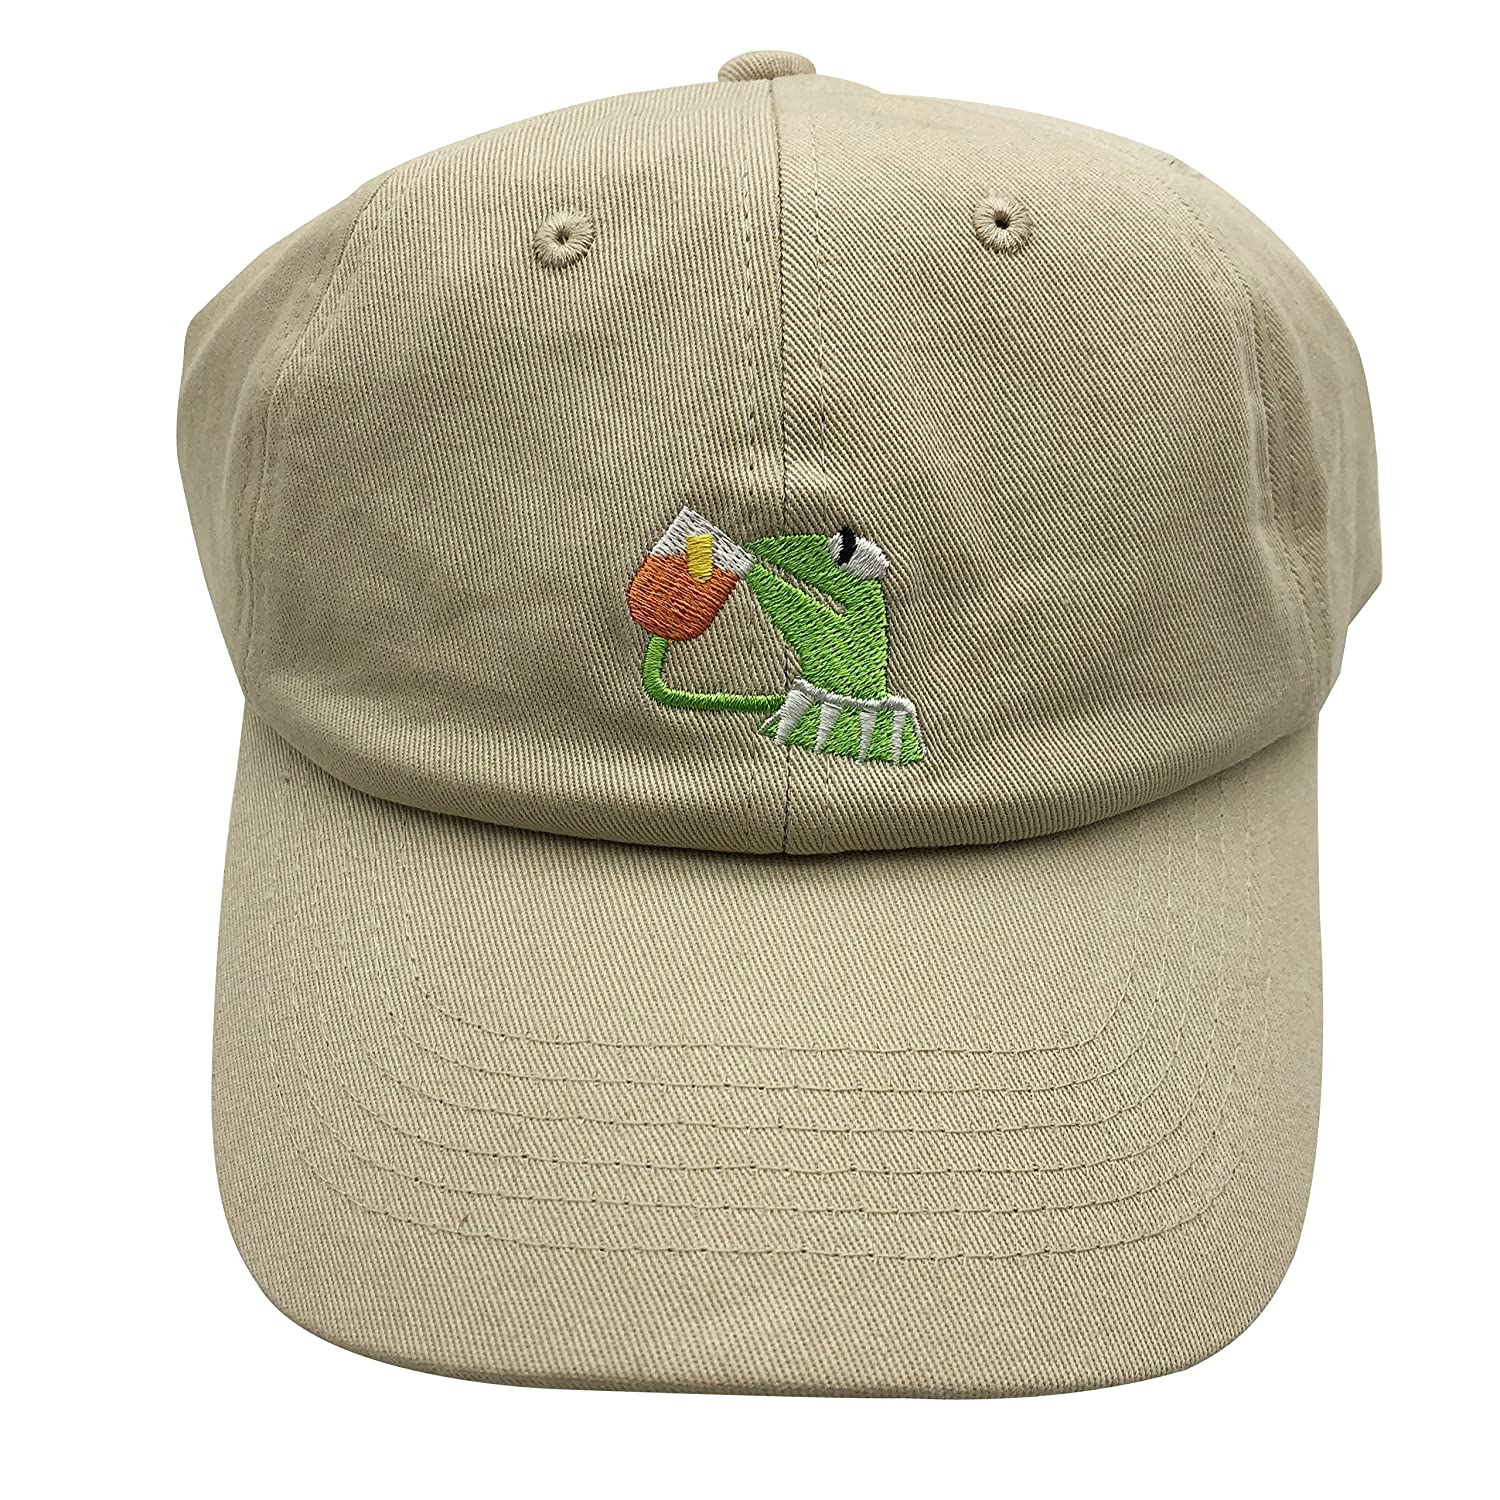 2e8178f95f7 Kermit The Frog Dad Hat Baseball Cap Sipping Sips Drinking Tea Champion  Adjustable Beige  Amazon.ca  Jewelry